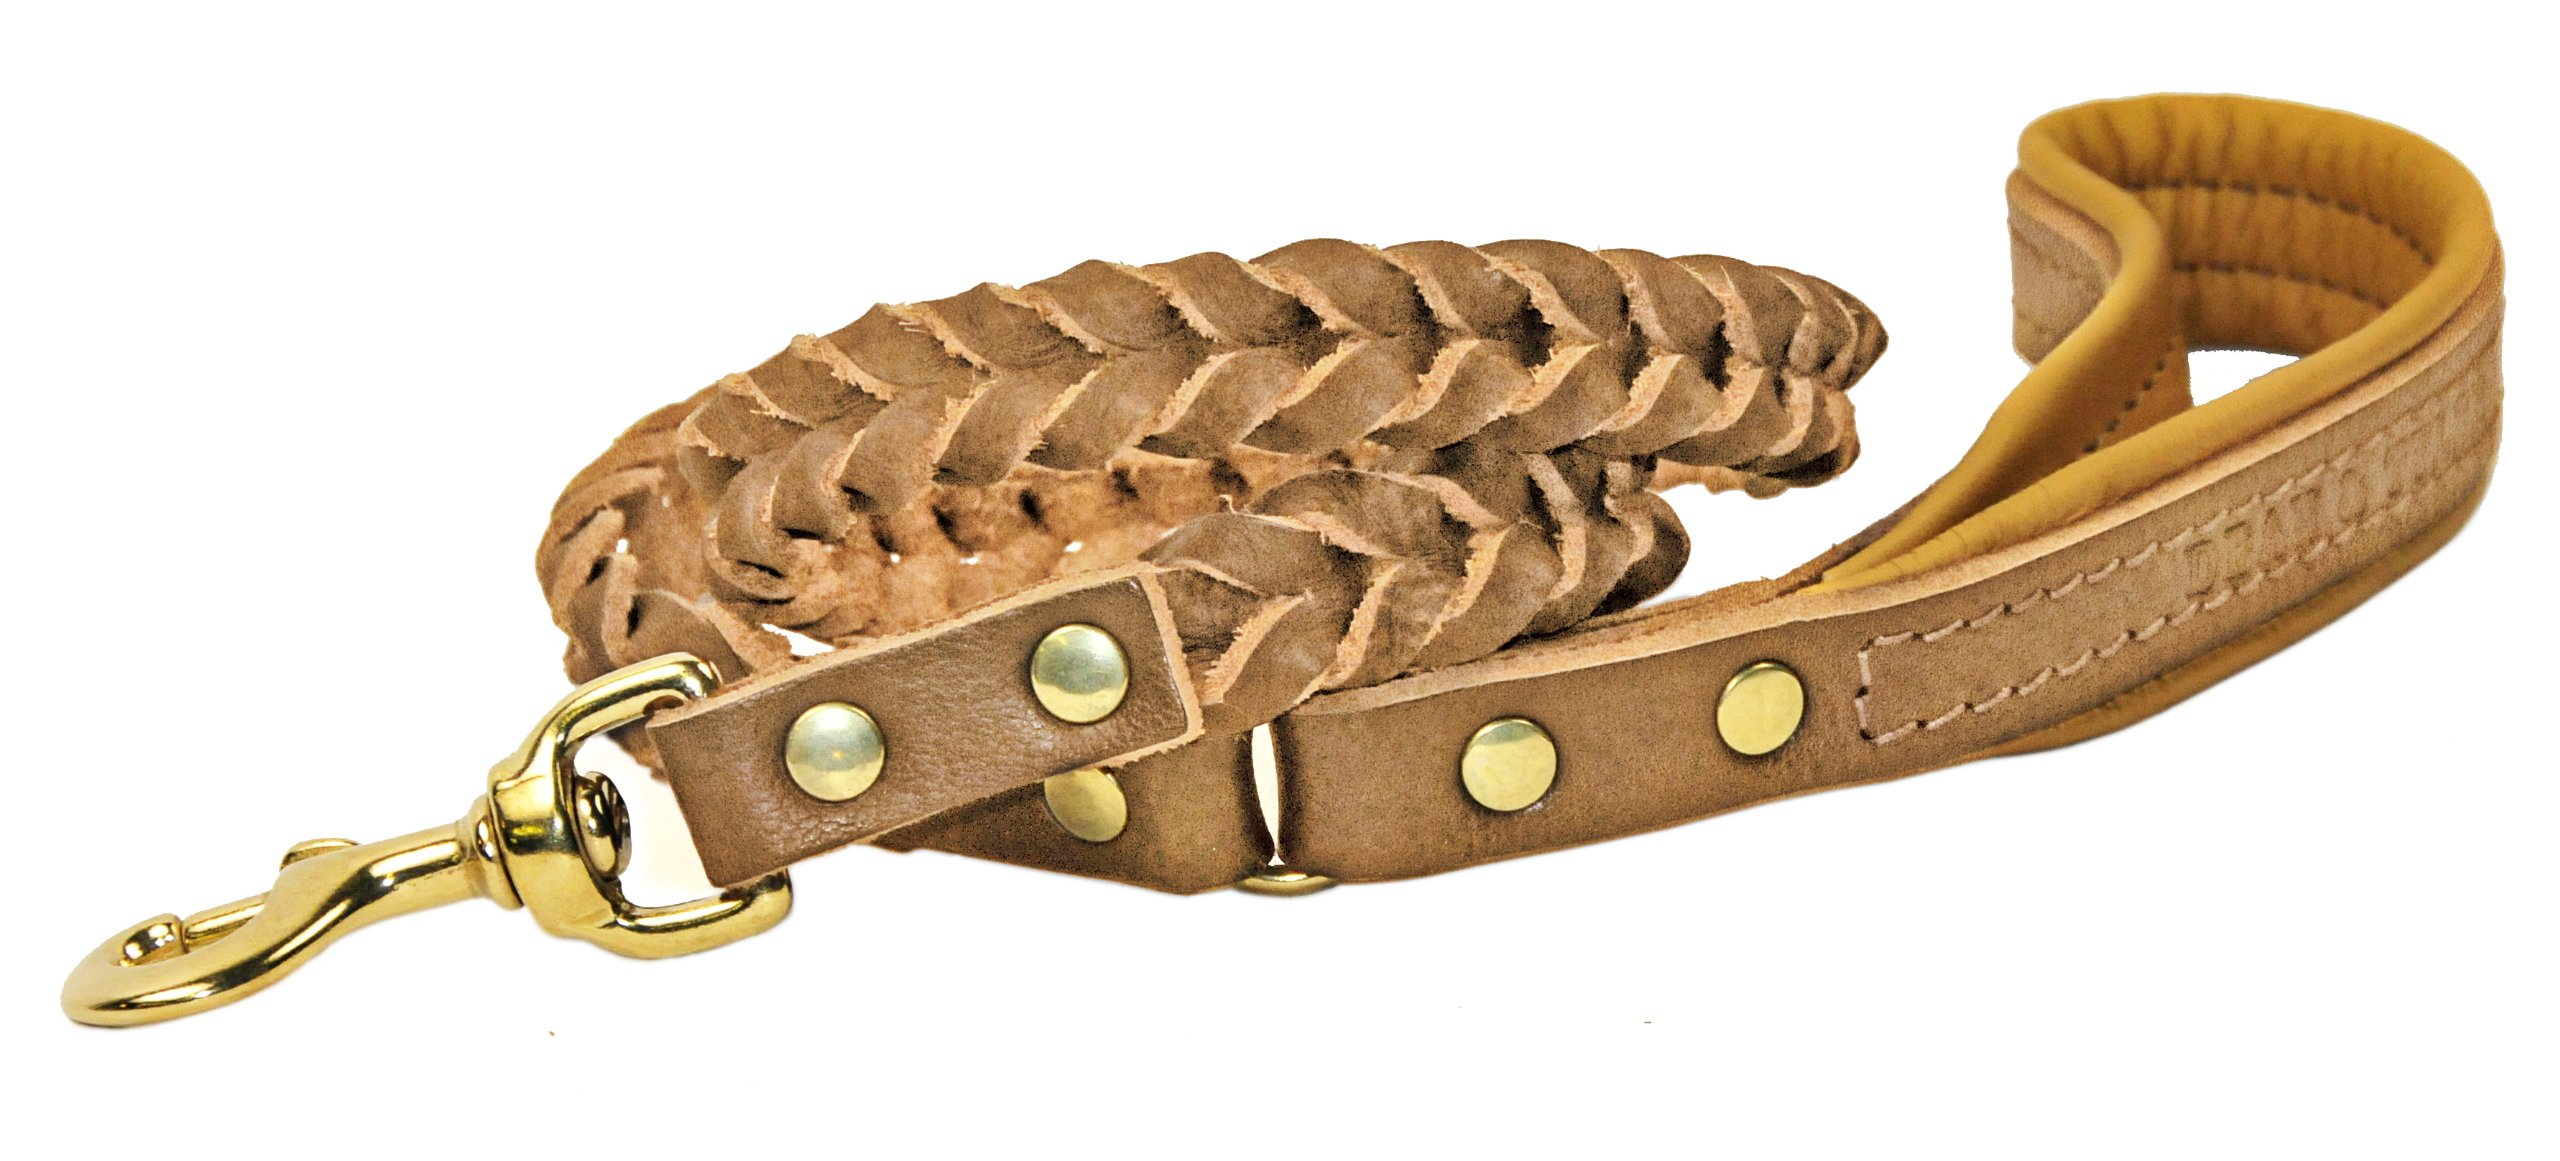 Dean & Tyler Comfort Braid Dog Leash with Brown Nappa Padded Handle and Solid Brass Hardware, 4-Feet by 3/4-Inch, Tan